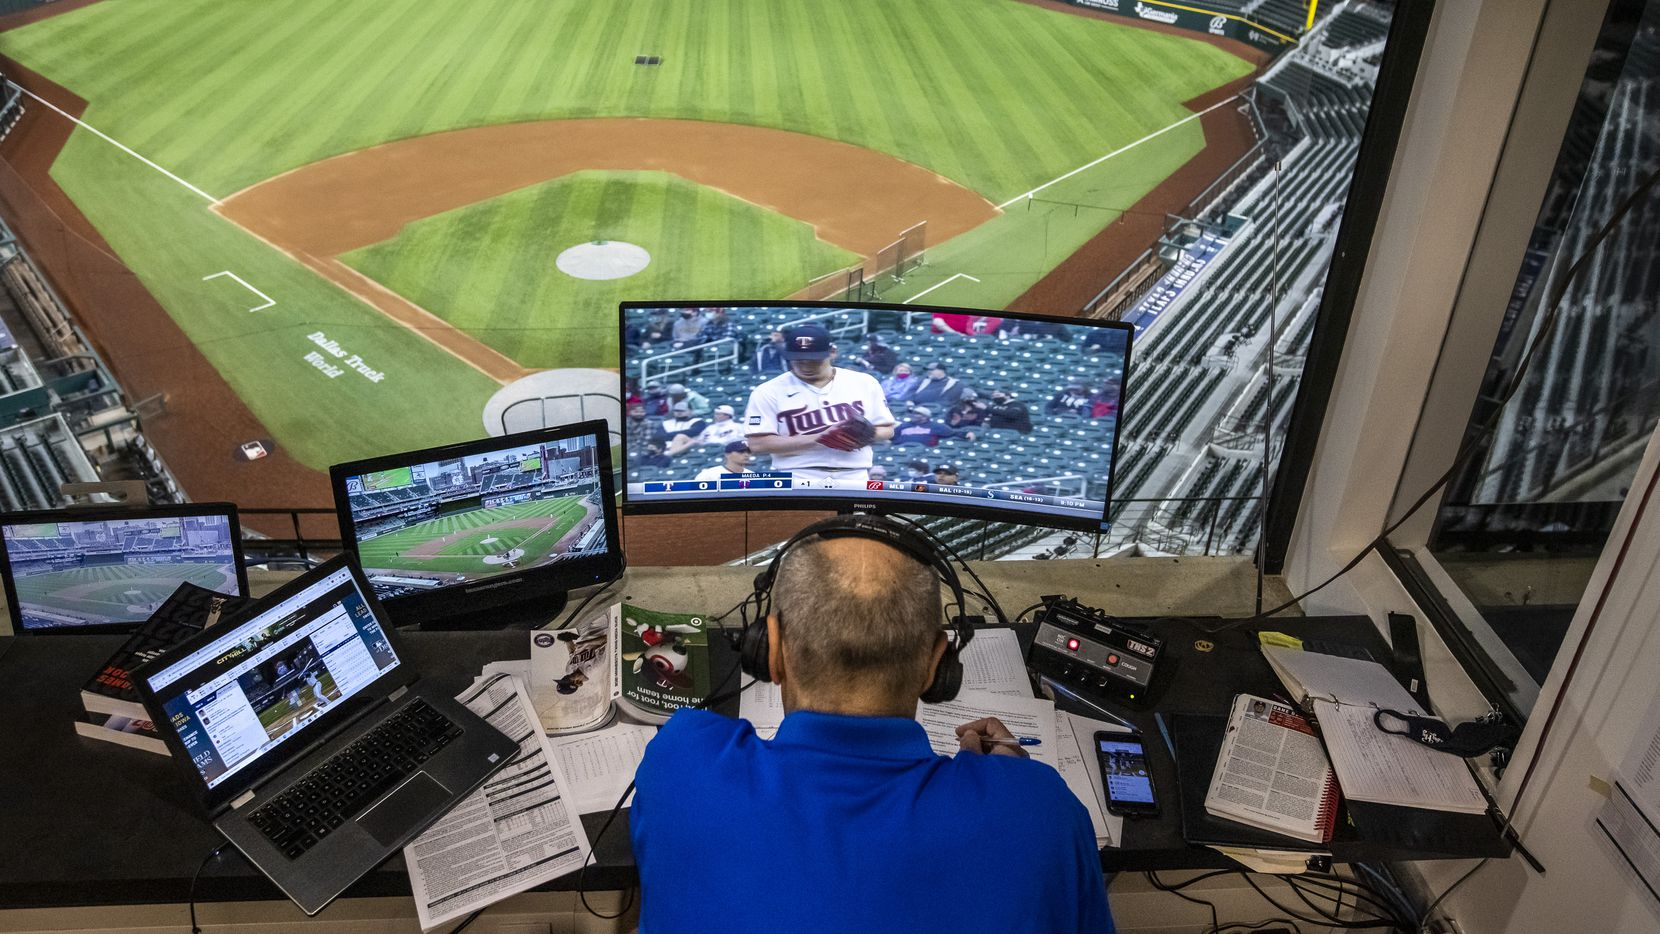 Texas Rangers broadcaster Eric Nadel announces the game between the Texas Rangers game and the Minneapolis Twins from an empty Globe Life Field in Arlington, Texas on Monday, May 3, 2021.